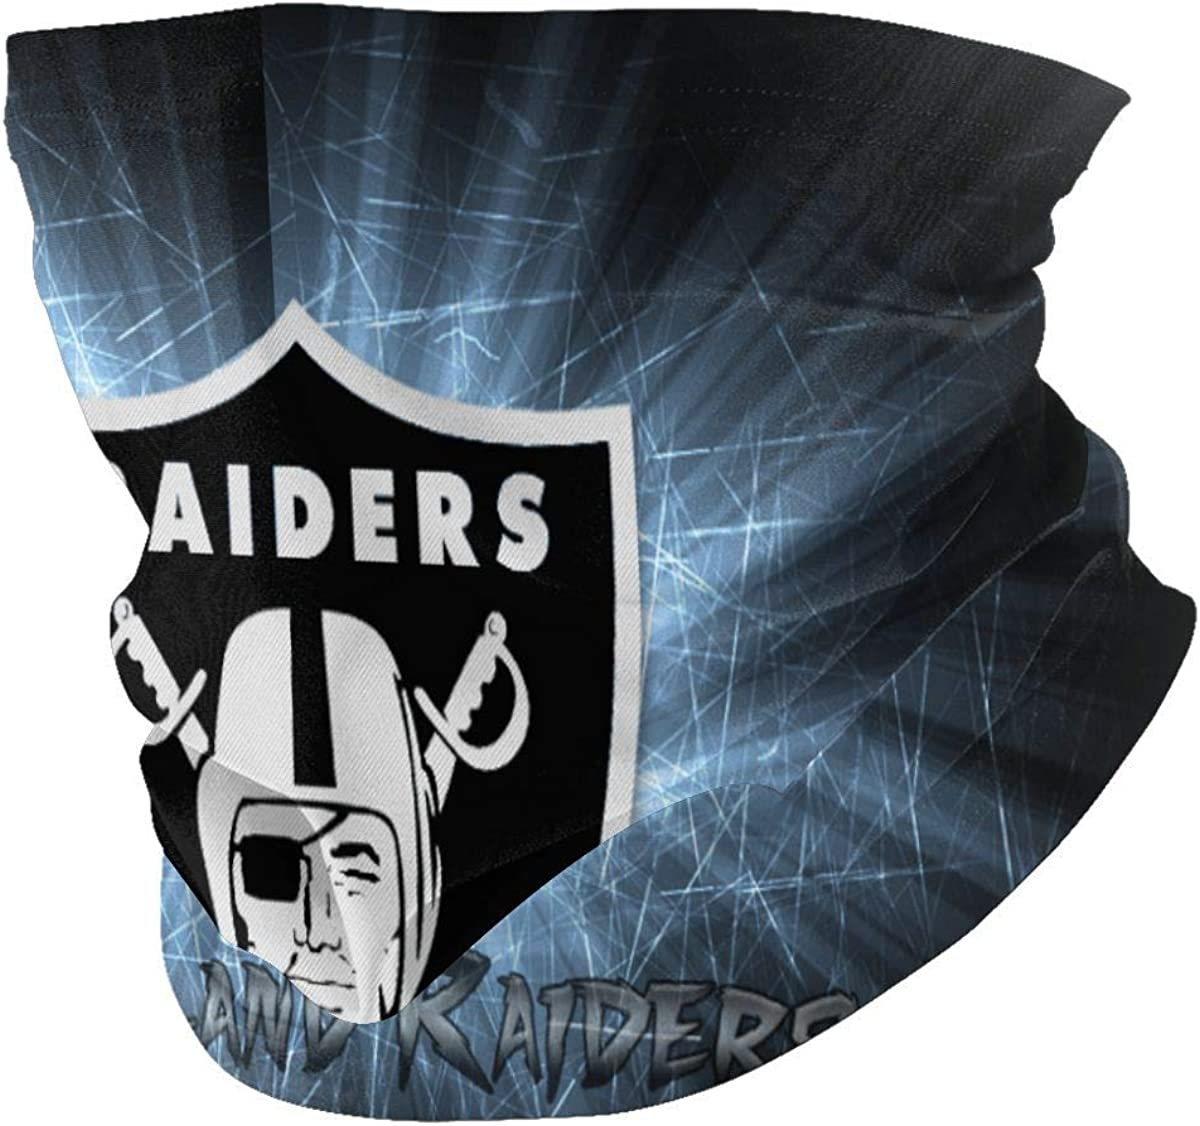 Oakland-Raiders Neck Gaiter Breathable Fishing Running Cycling Head Scarf Ski face Nose Covers for Men Women Black